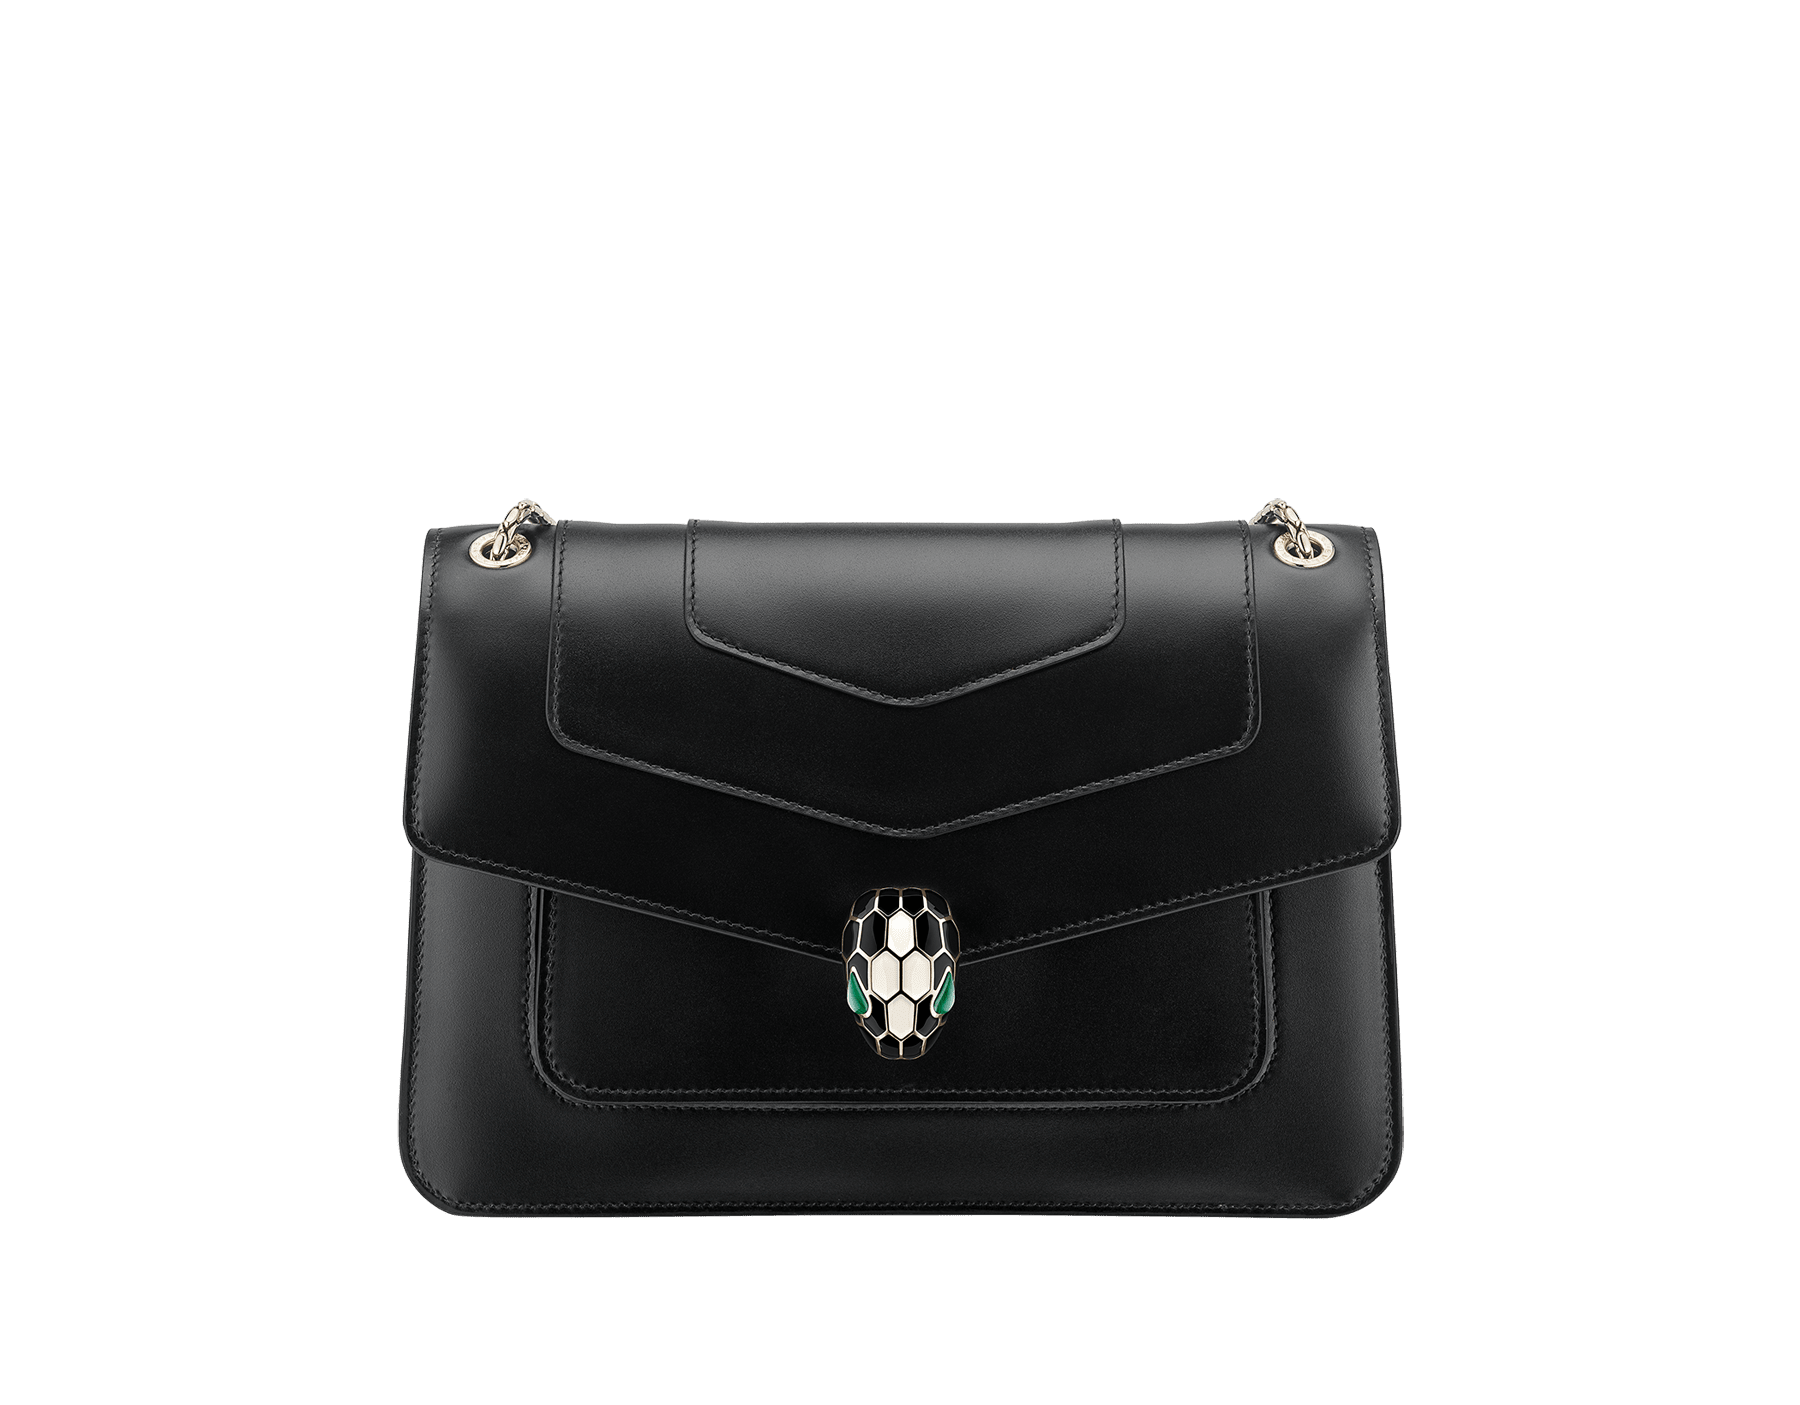 """""""Serpenti Forever"""" crossbody bag in black calf leather. Iconic snakehead closure in light gold plated brass enriched with black and white agate enamel and green malachite eyes. 1077-CL image 1"""